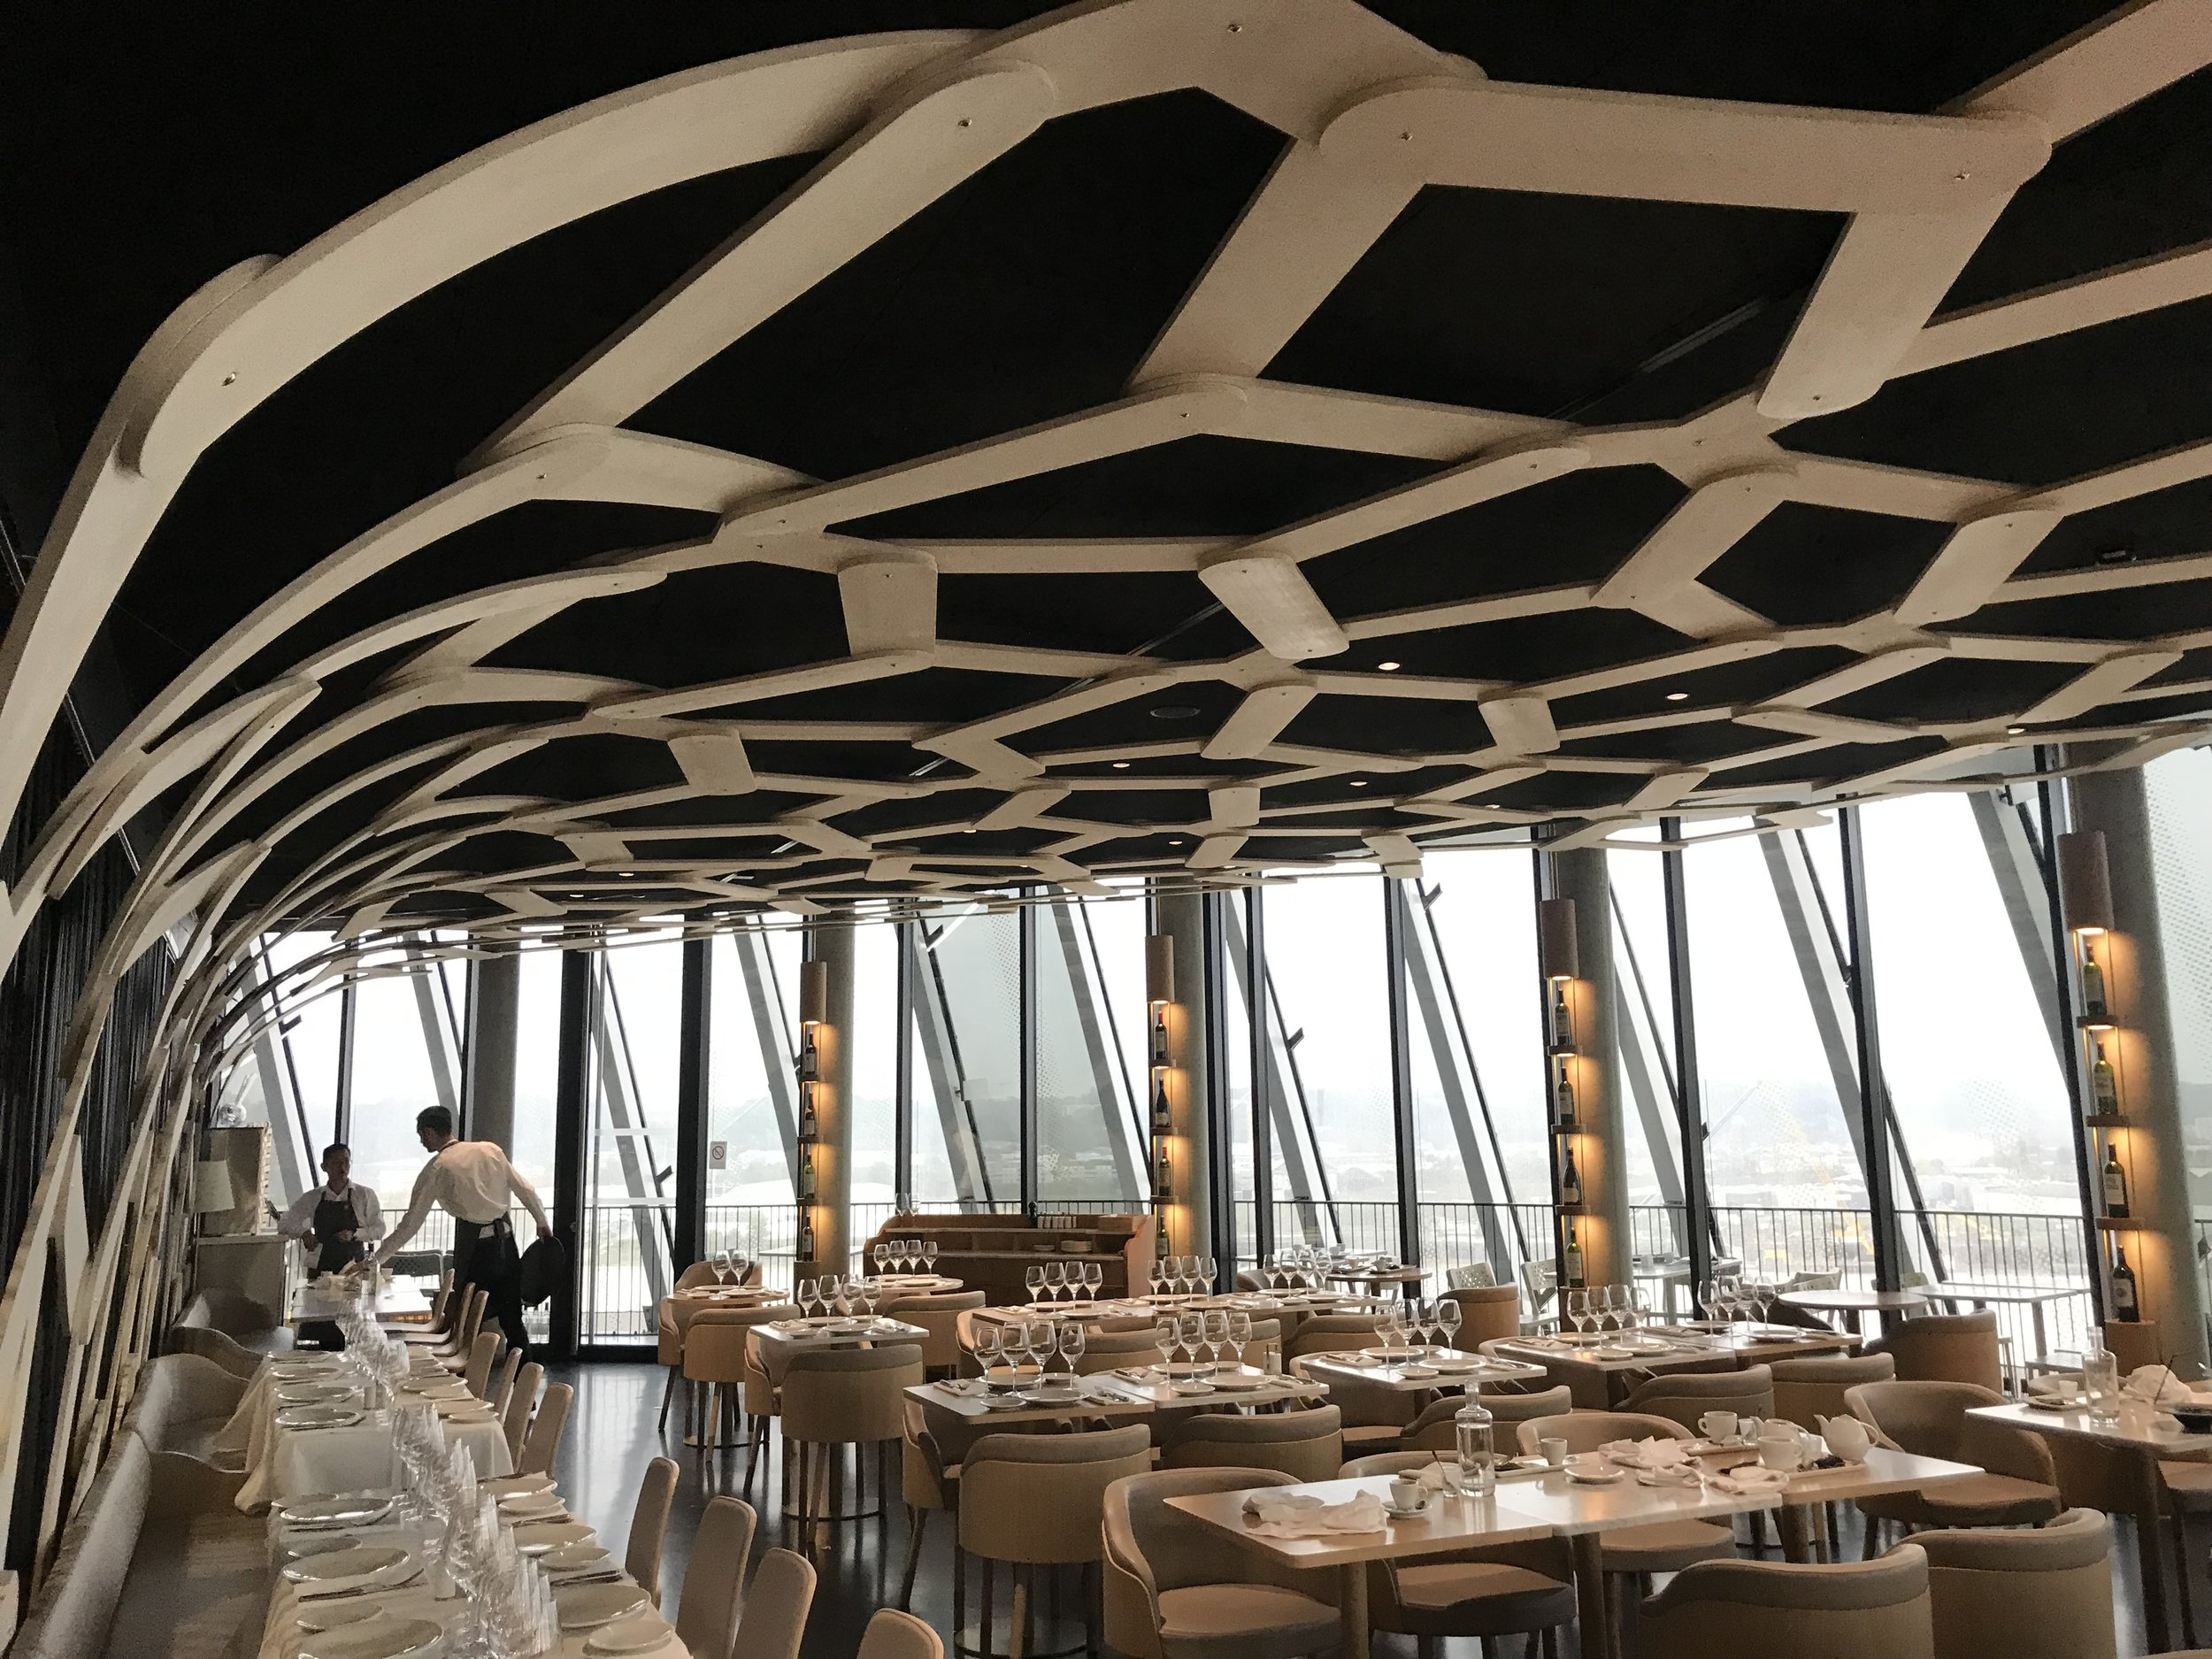 Le 7 Restaurant - Talk about an extensive wine list on a tablet they hand you, the food and the views are all out of this world not to mention the eye capturing modern architectural ceiling design. The restaurant is located inside the wine museum – La Cité du Vin. When we went we made it a day event which included lunch at the restaurant and we were not disappointed.